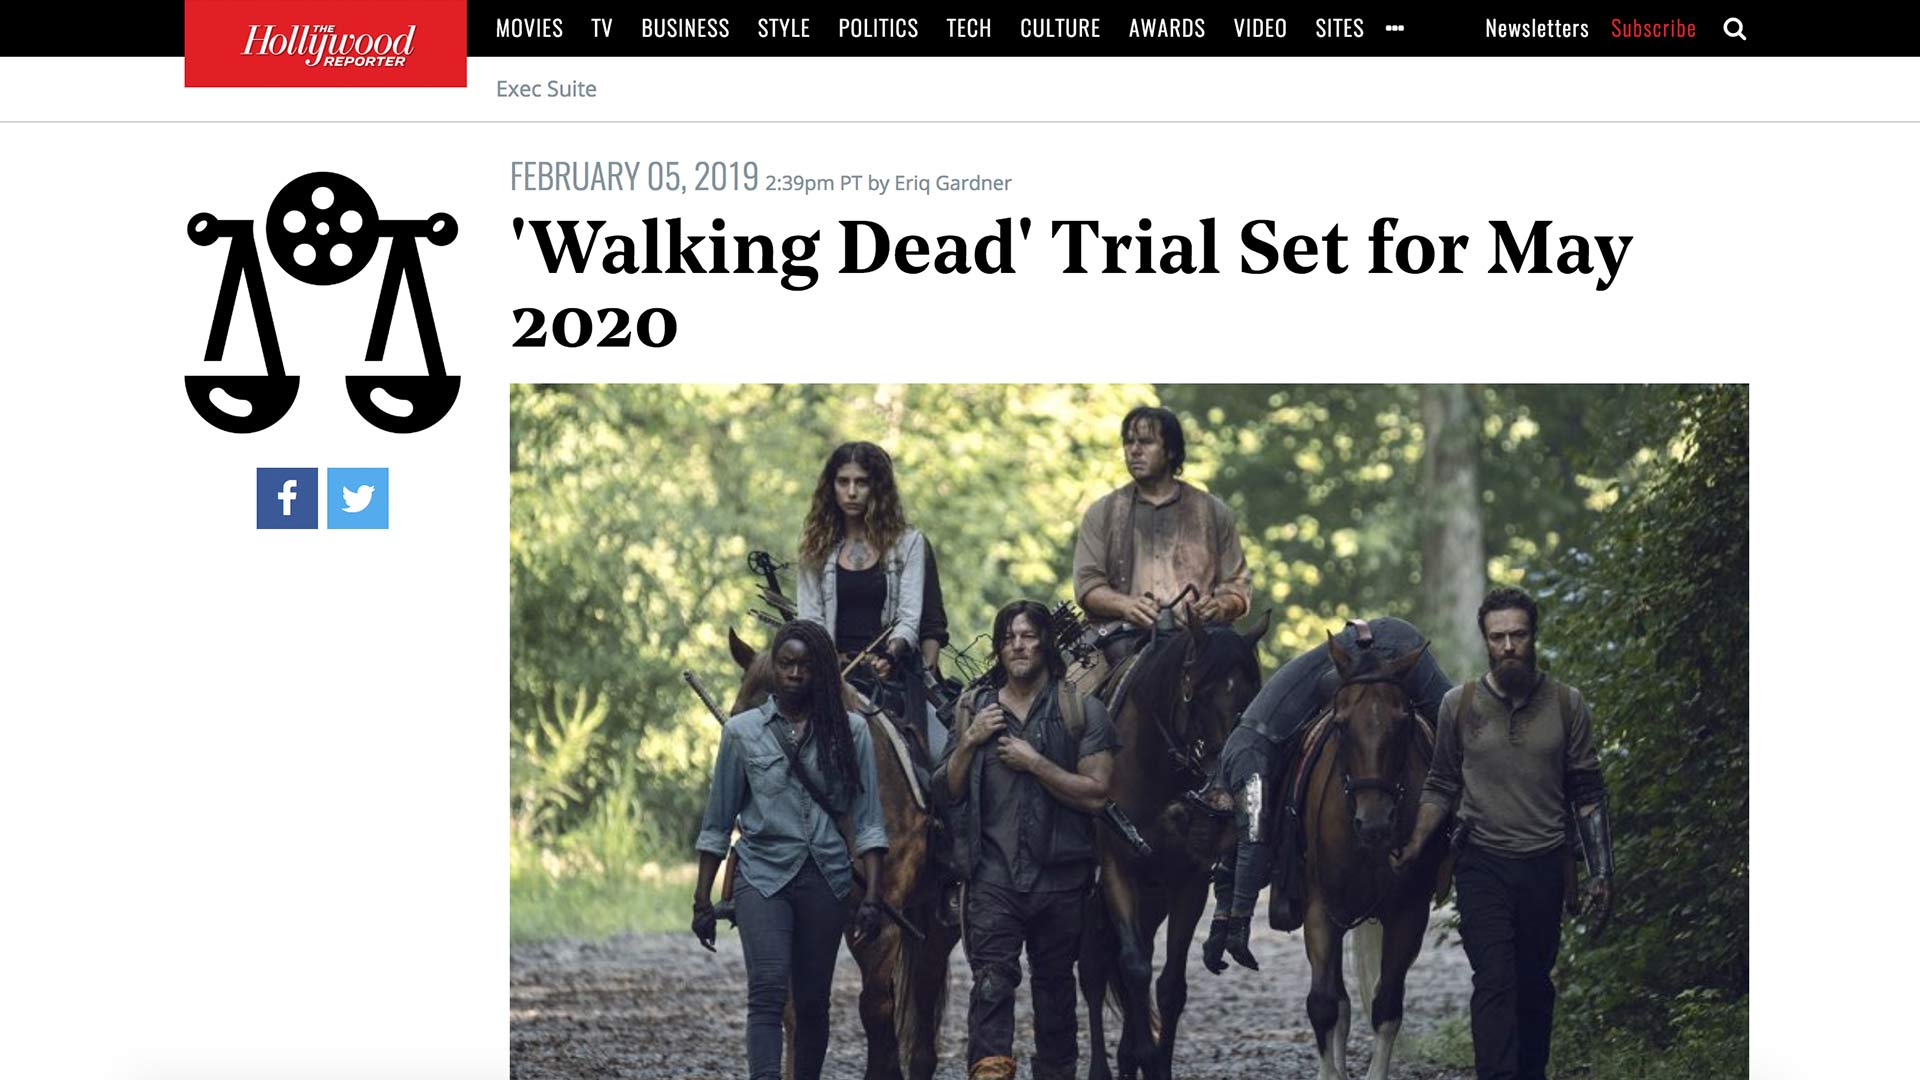 Fairness Rocks News 'Walking Dead' Trial Set for May 2020